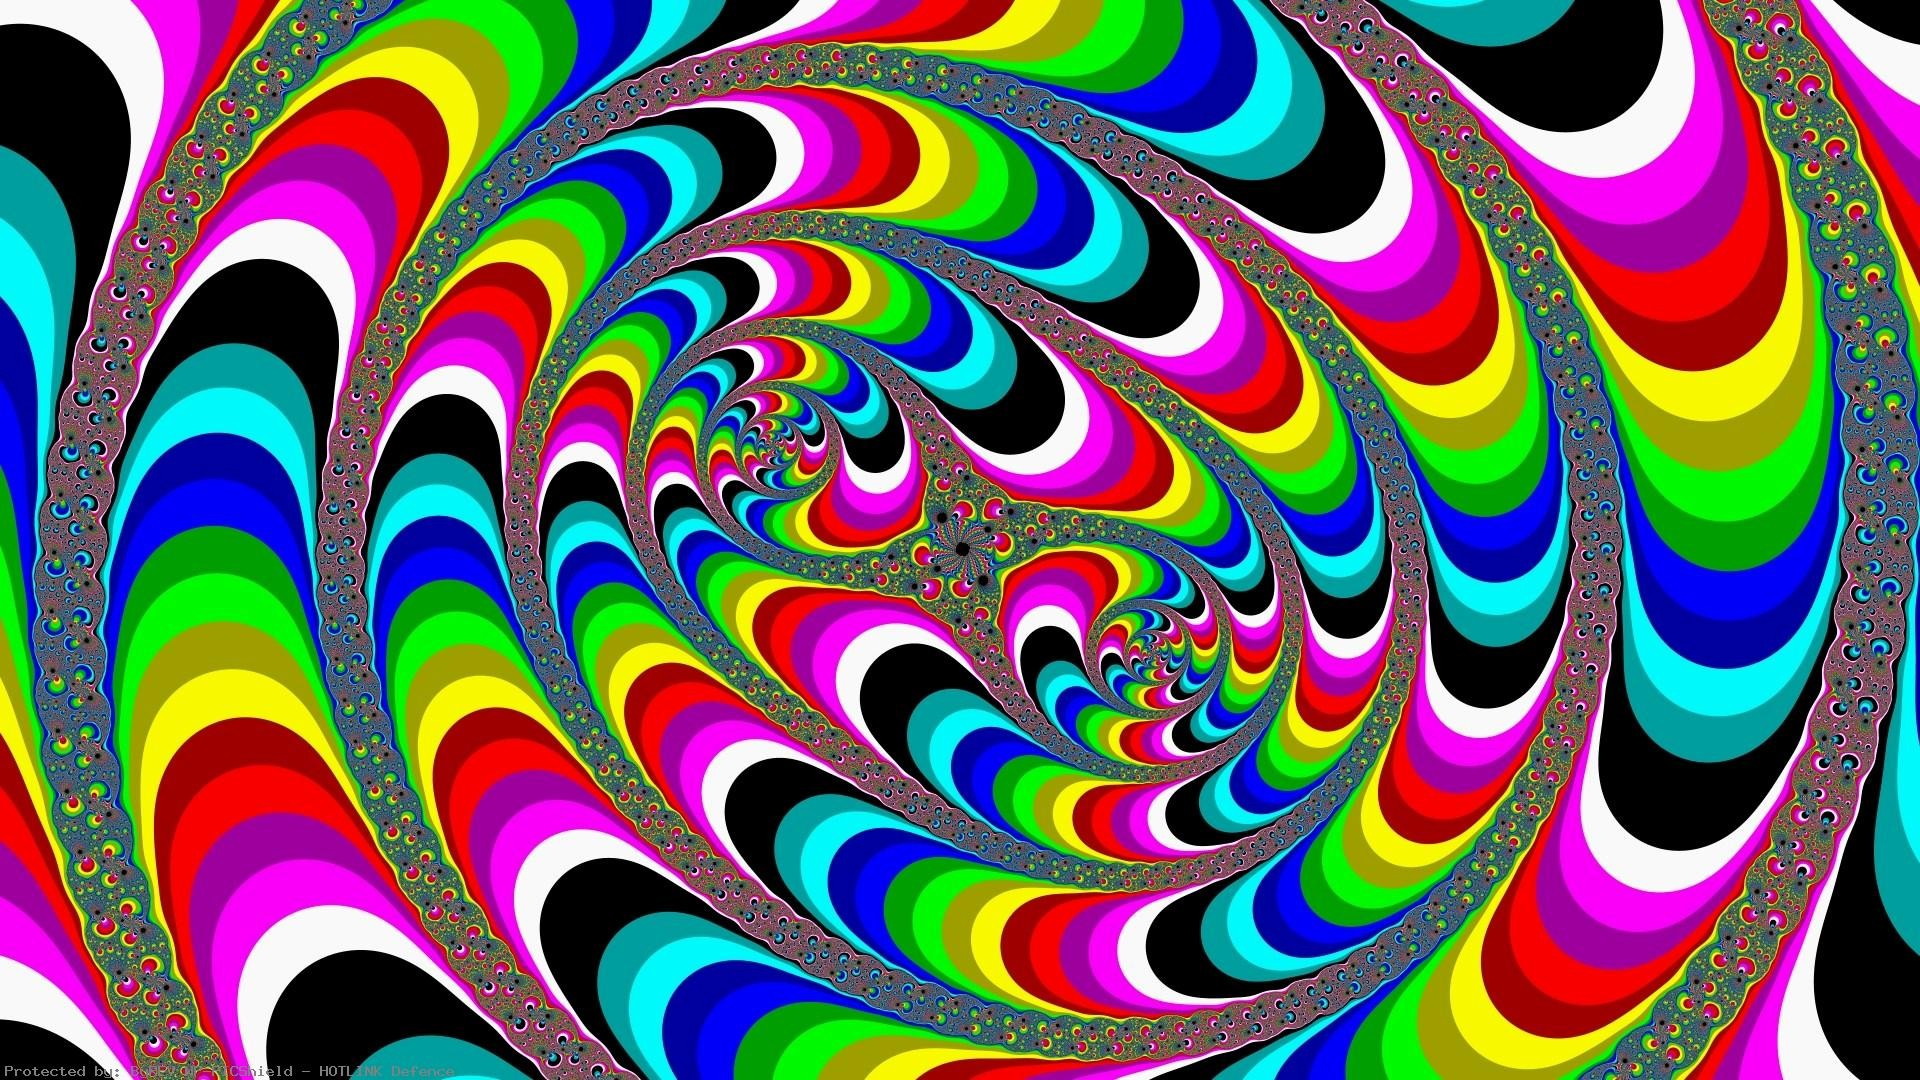 high-resolution-s-widescreen-psychedelic-kB-Ozzy-Round-